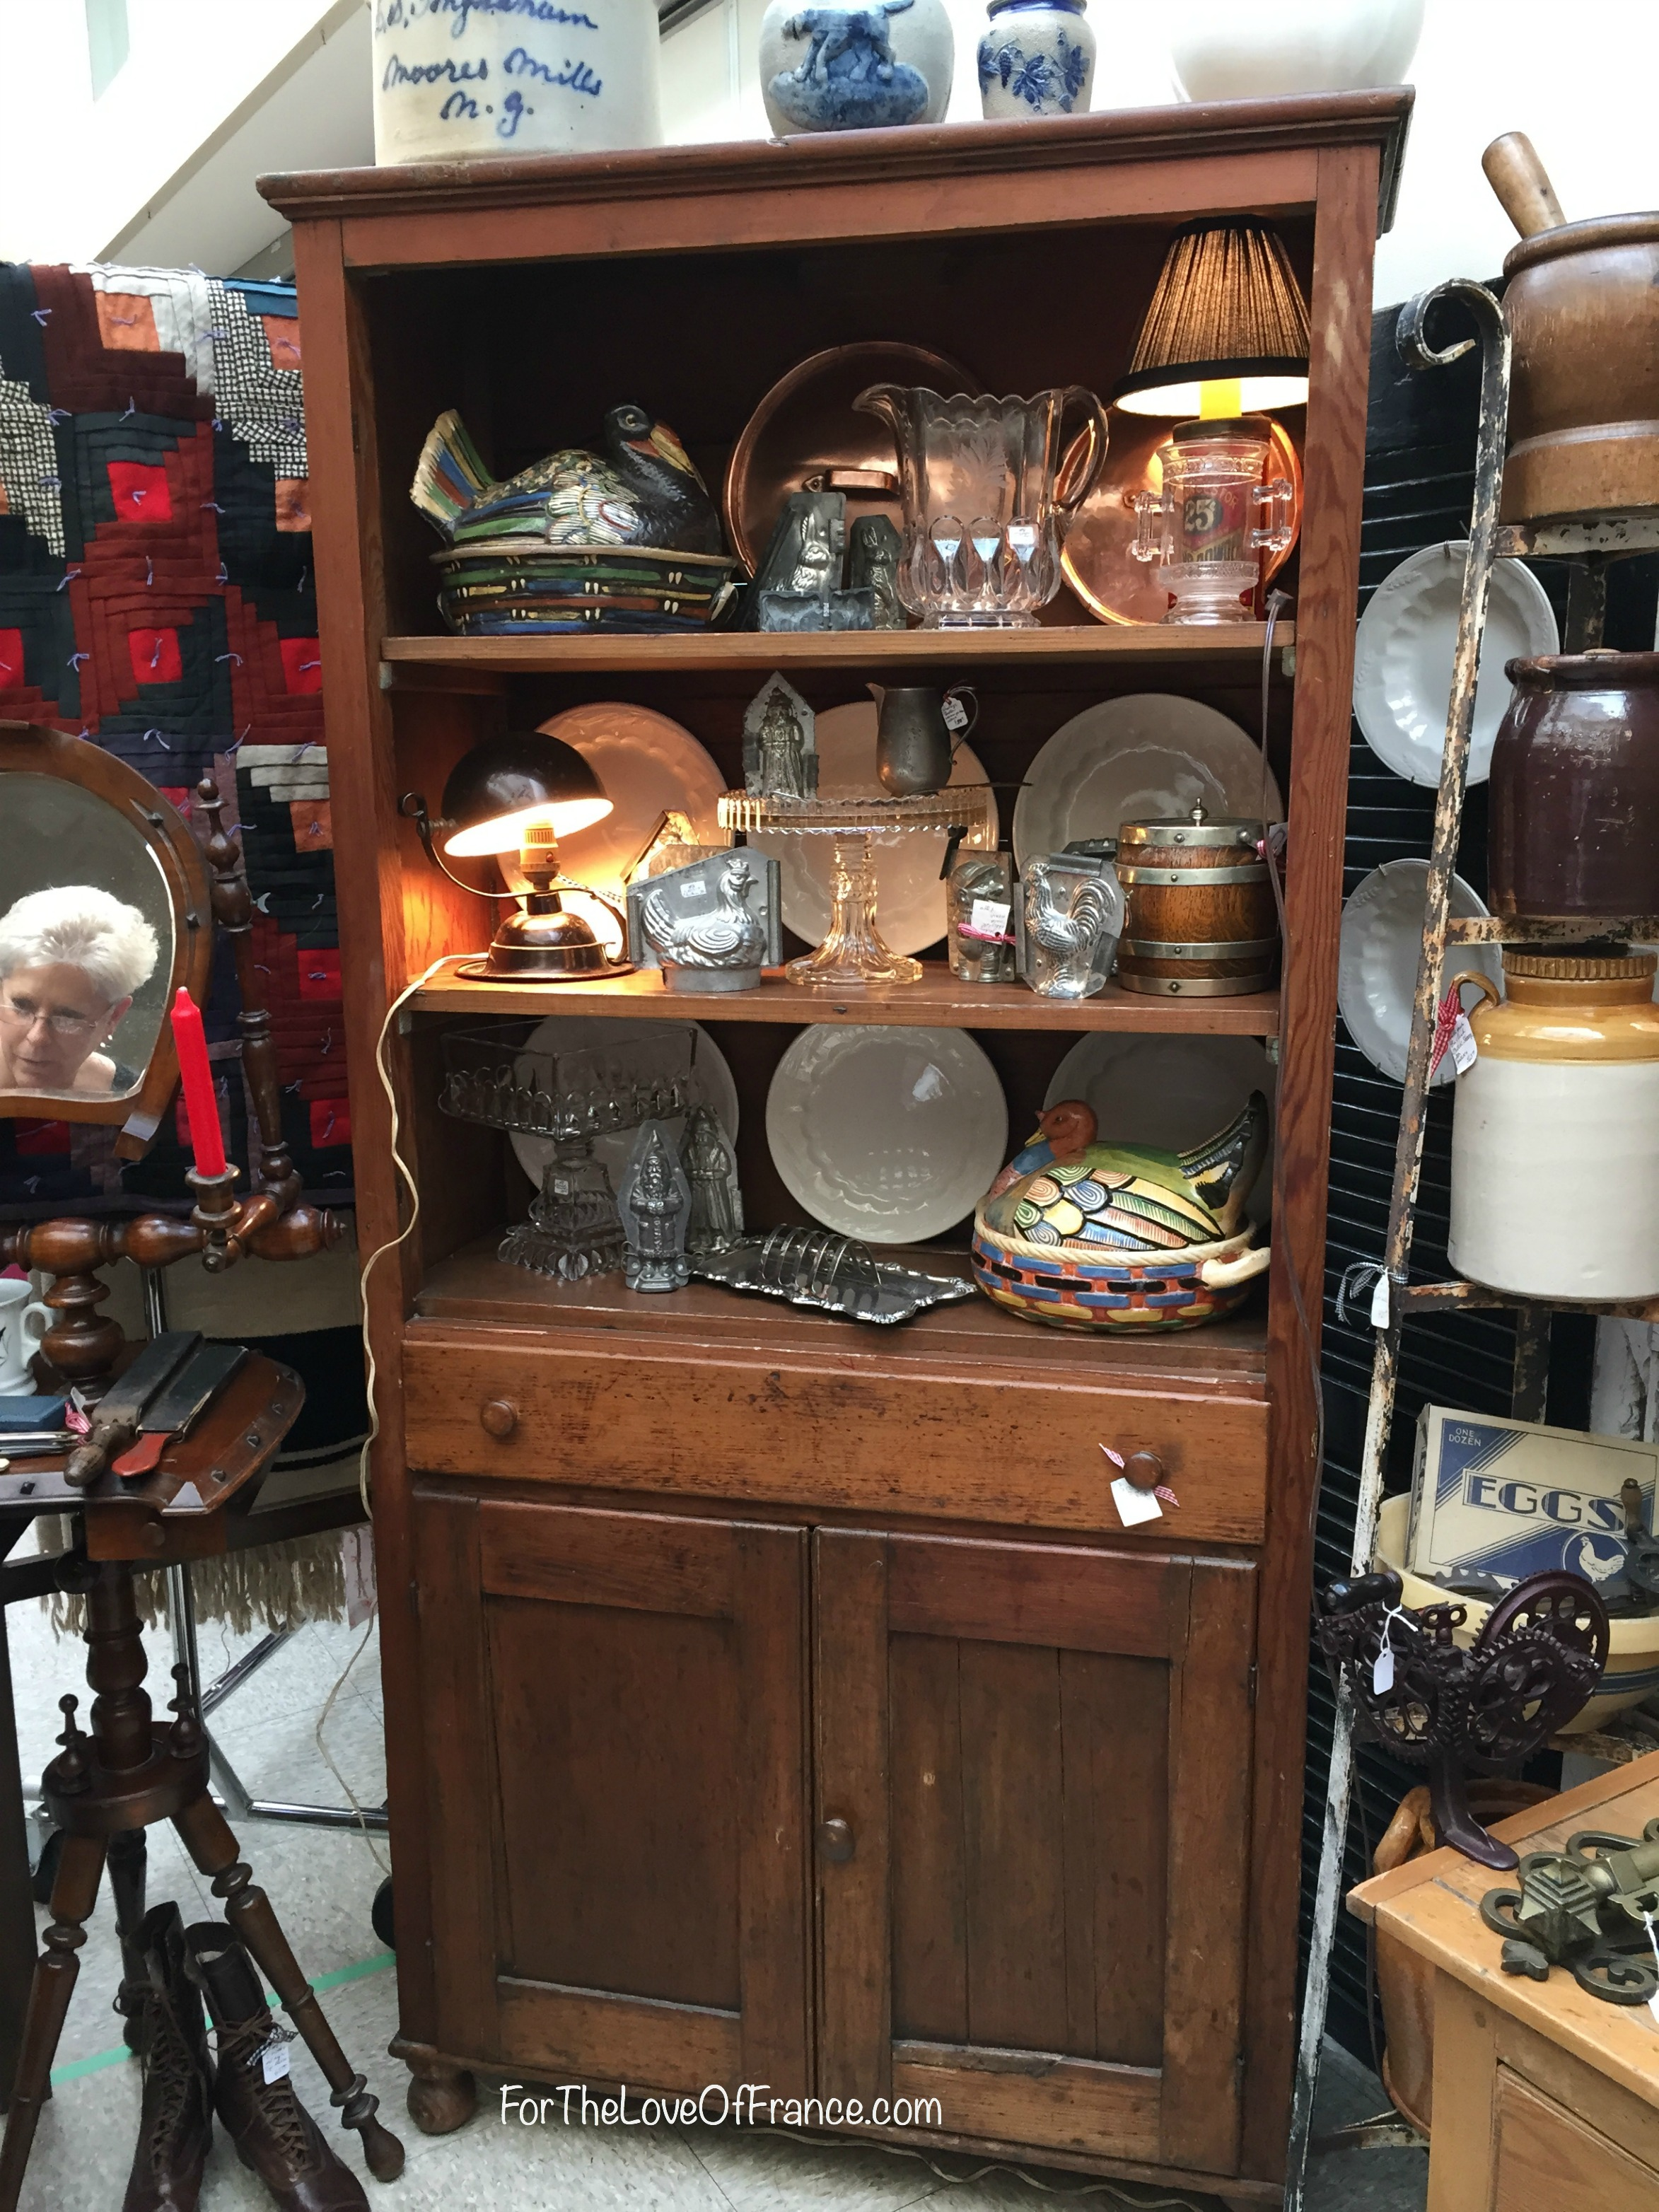 Antique Kitchen Cupbaoad, Vintage Wooden Cupboard.jpg